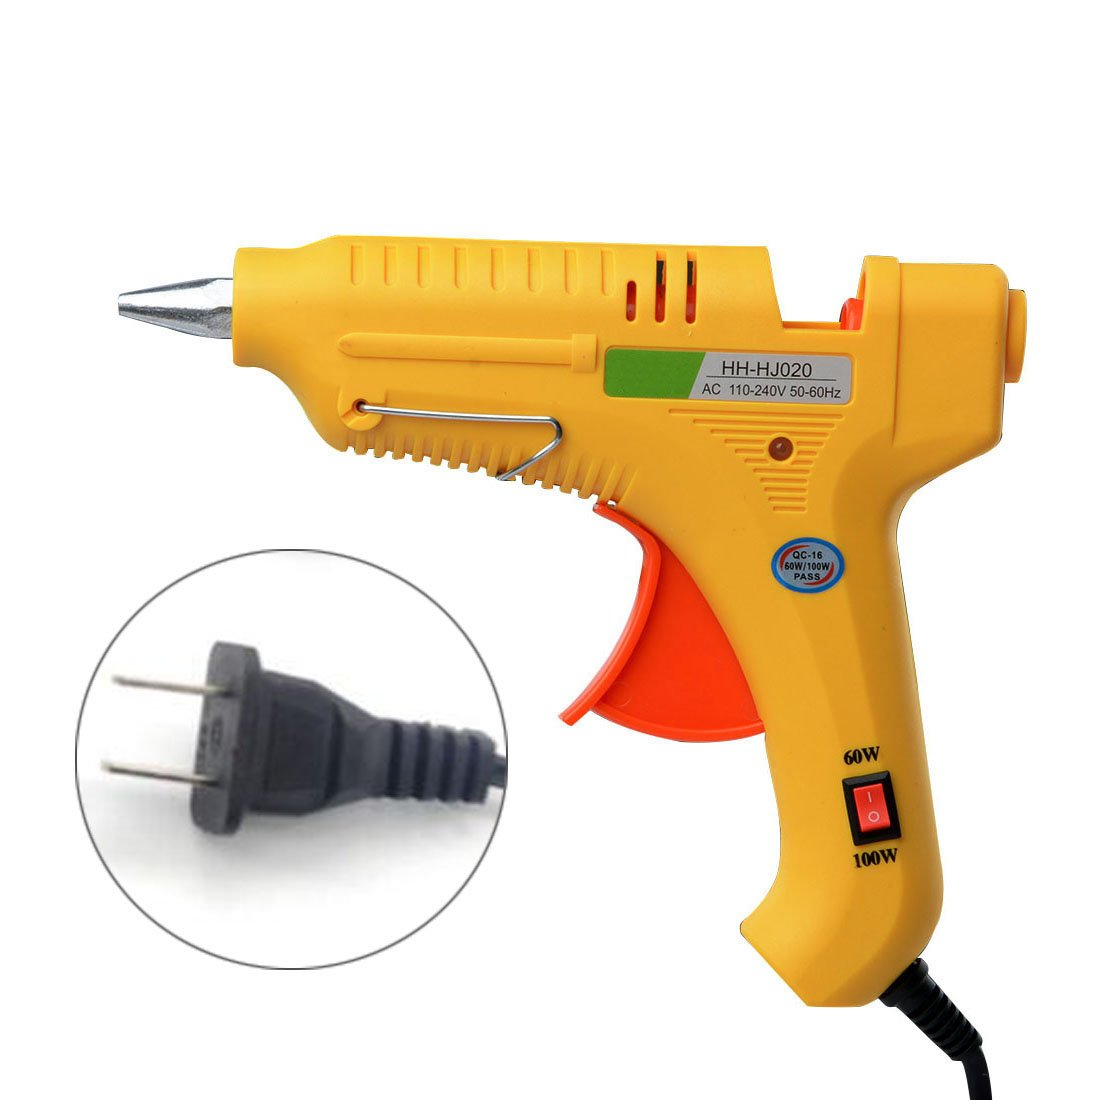 Glue Gun,YUIOP 60/100W Glue Gun, with 10Pcs Glue Sticks,60/100 Watt Dual Power Hot Melt Glue Gun, for DIY Small Projects, Arts and Crafts, Home Quick